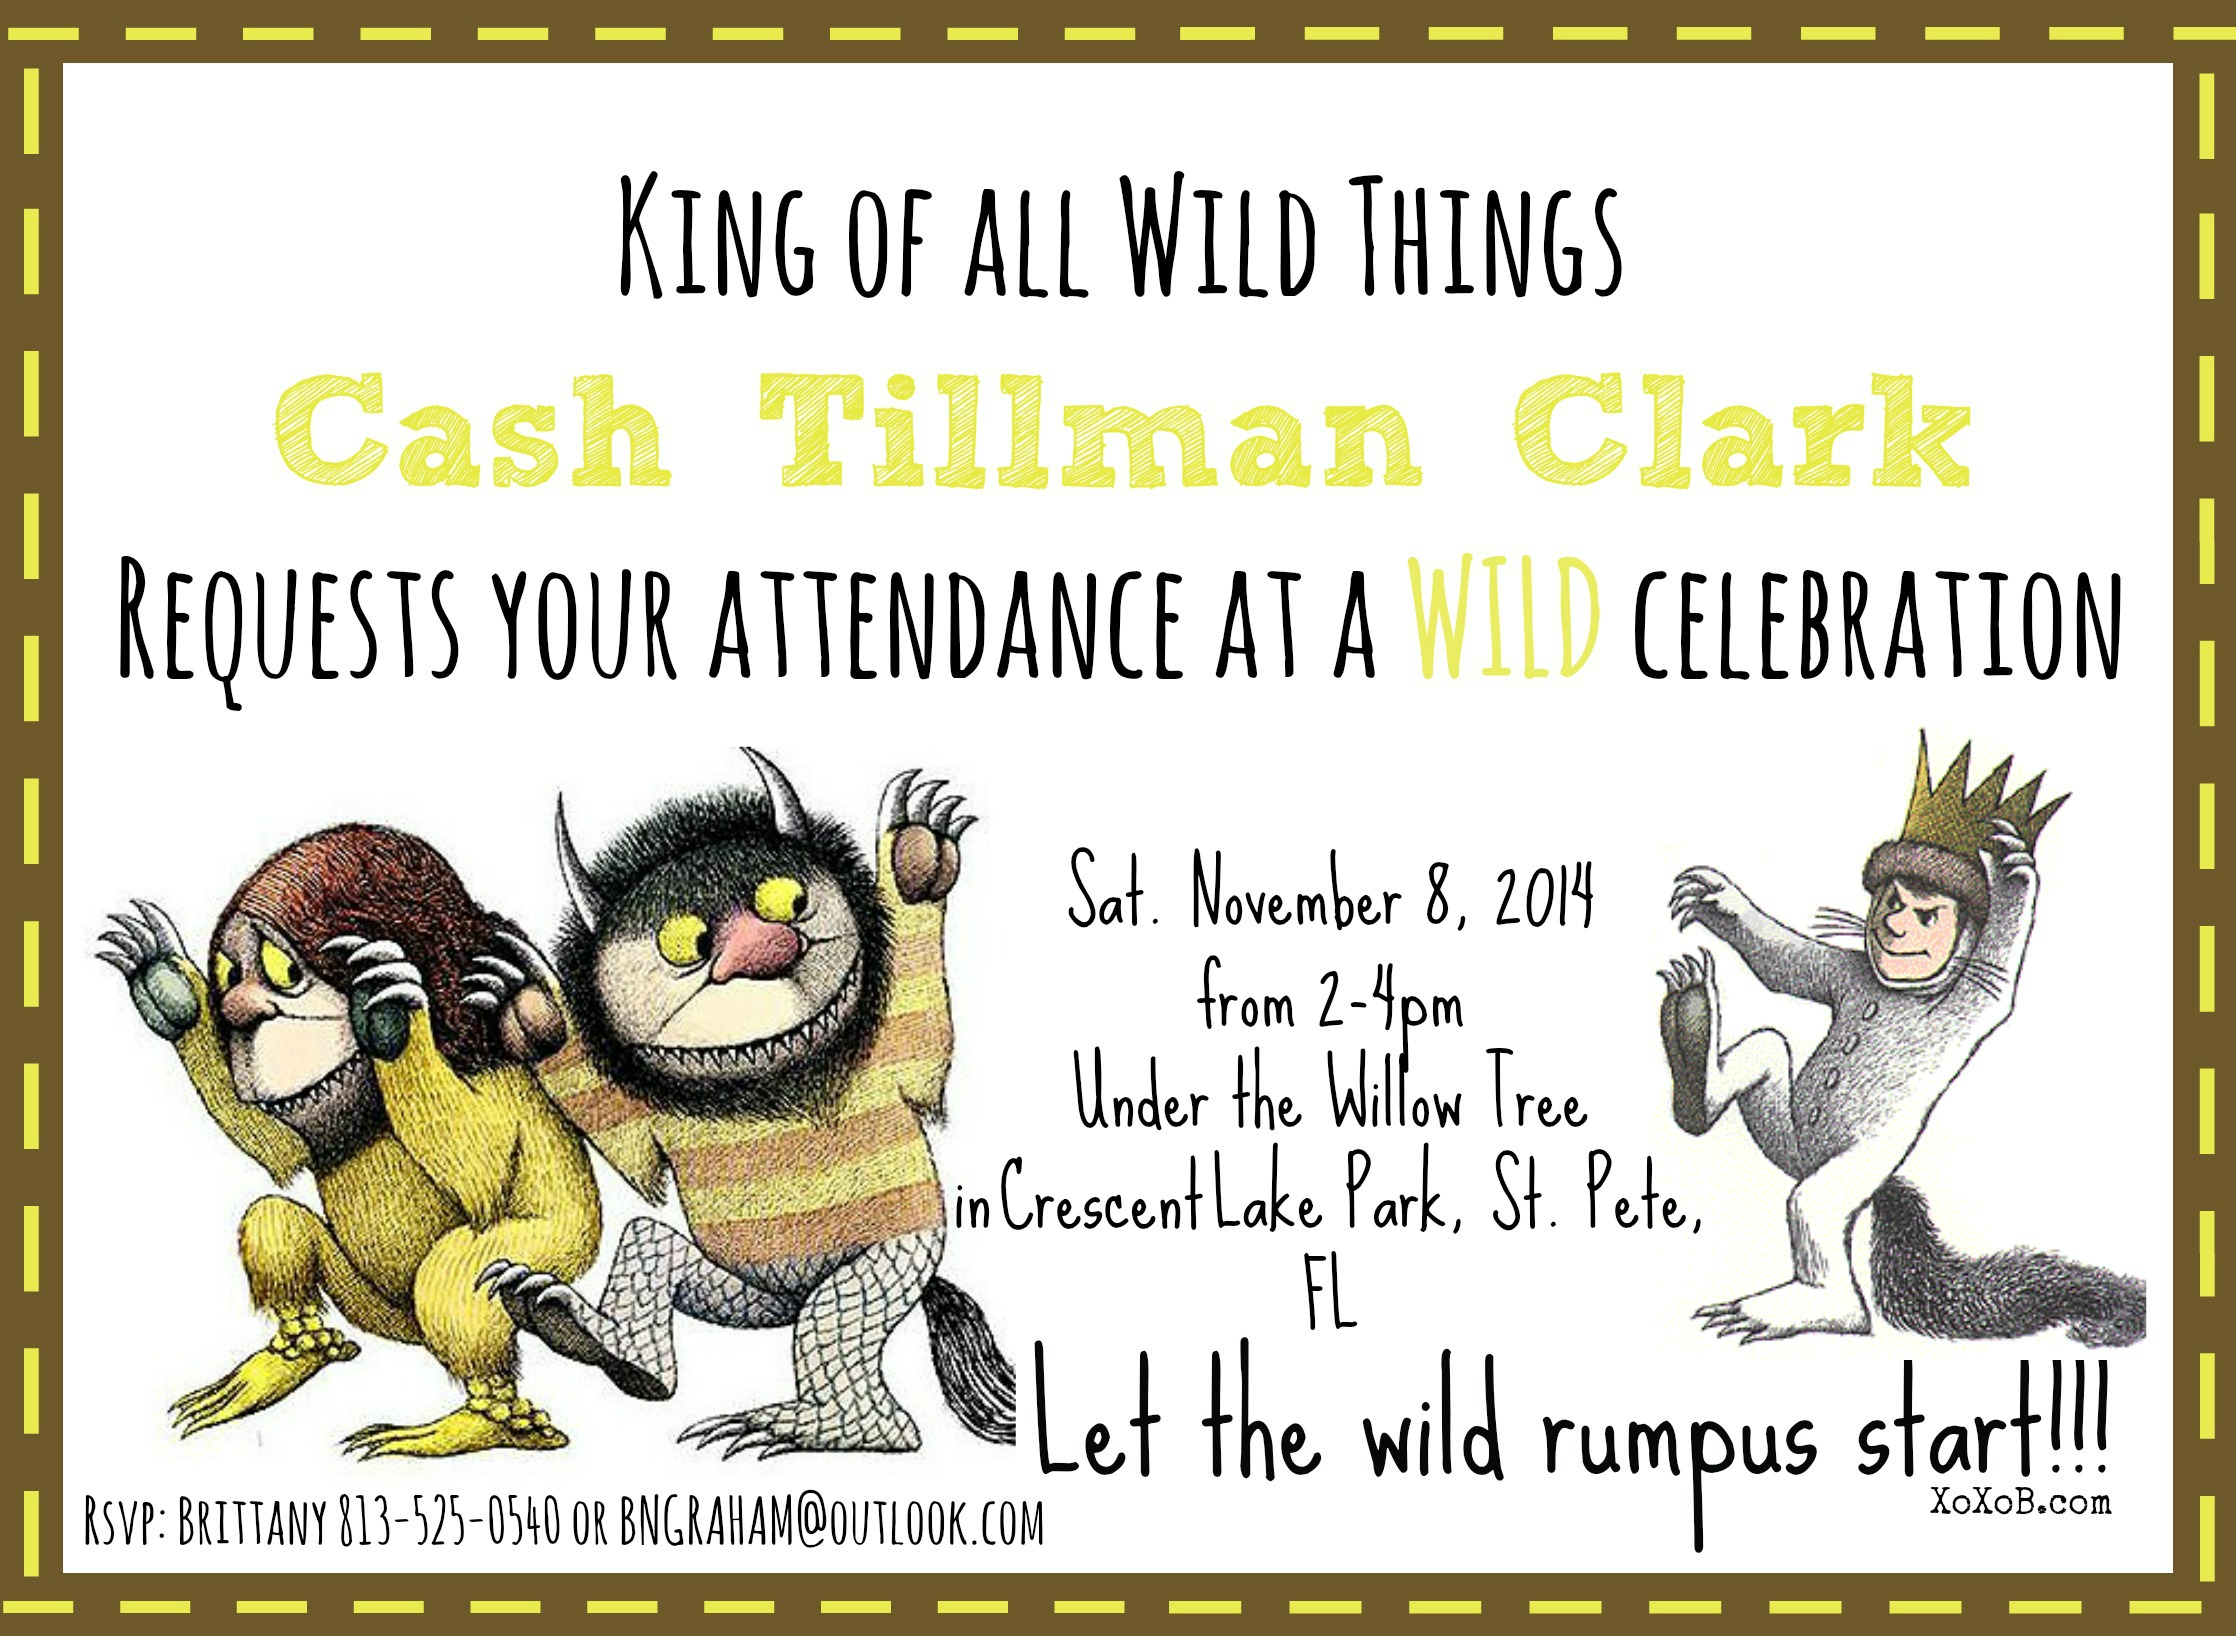 Where the Wild Things are Cashs 1st Birthday XoXoB